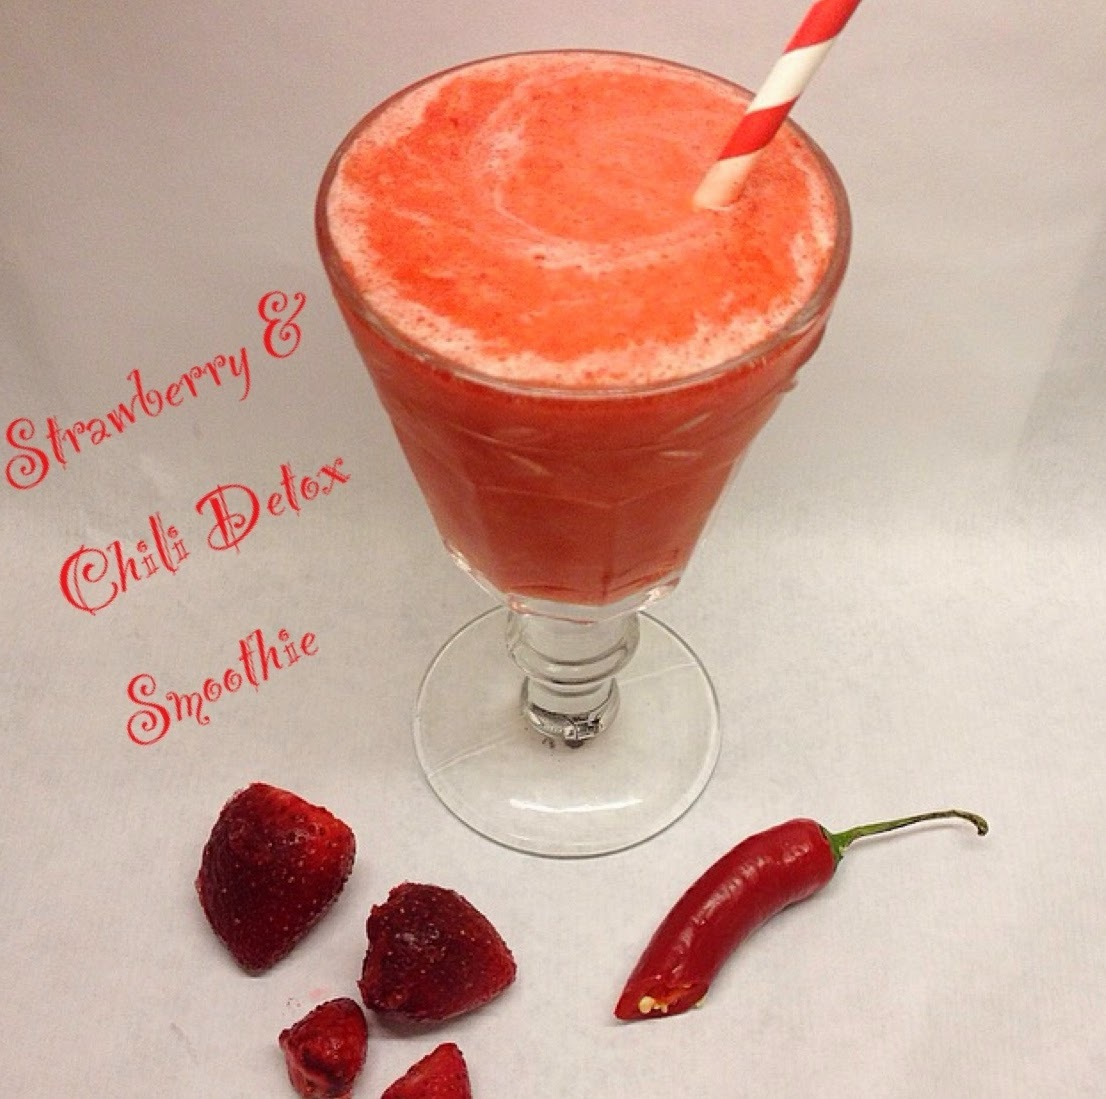 Jordgubbs & Chili Detox Smoothie